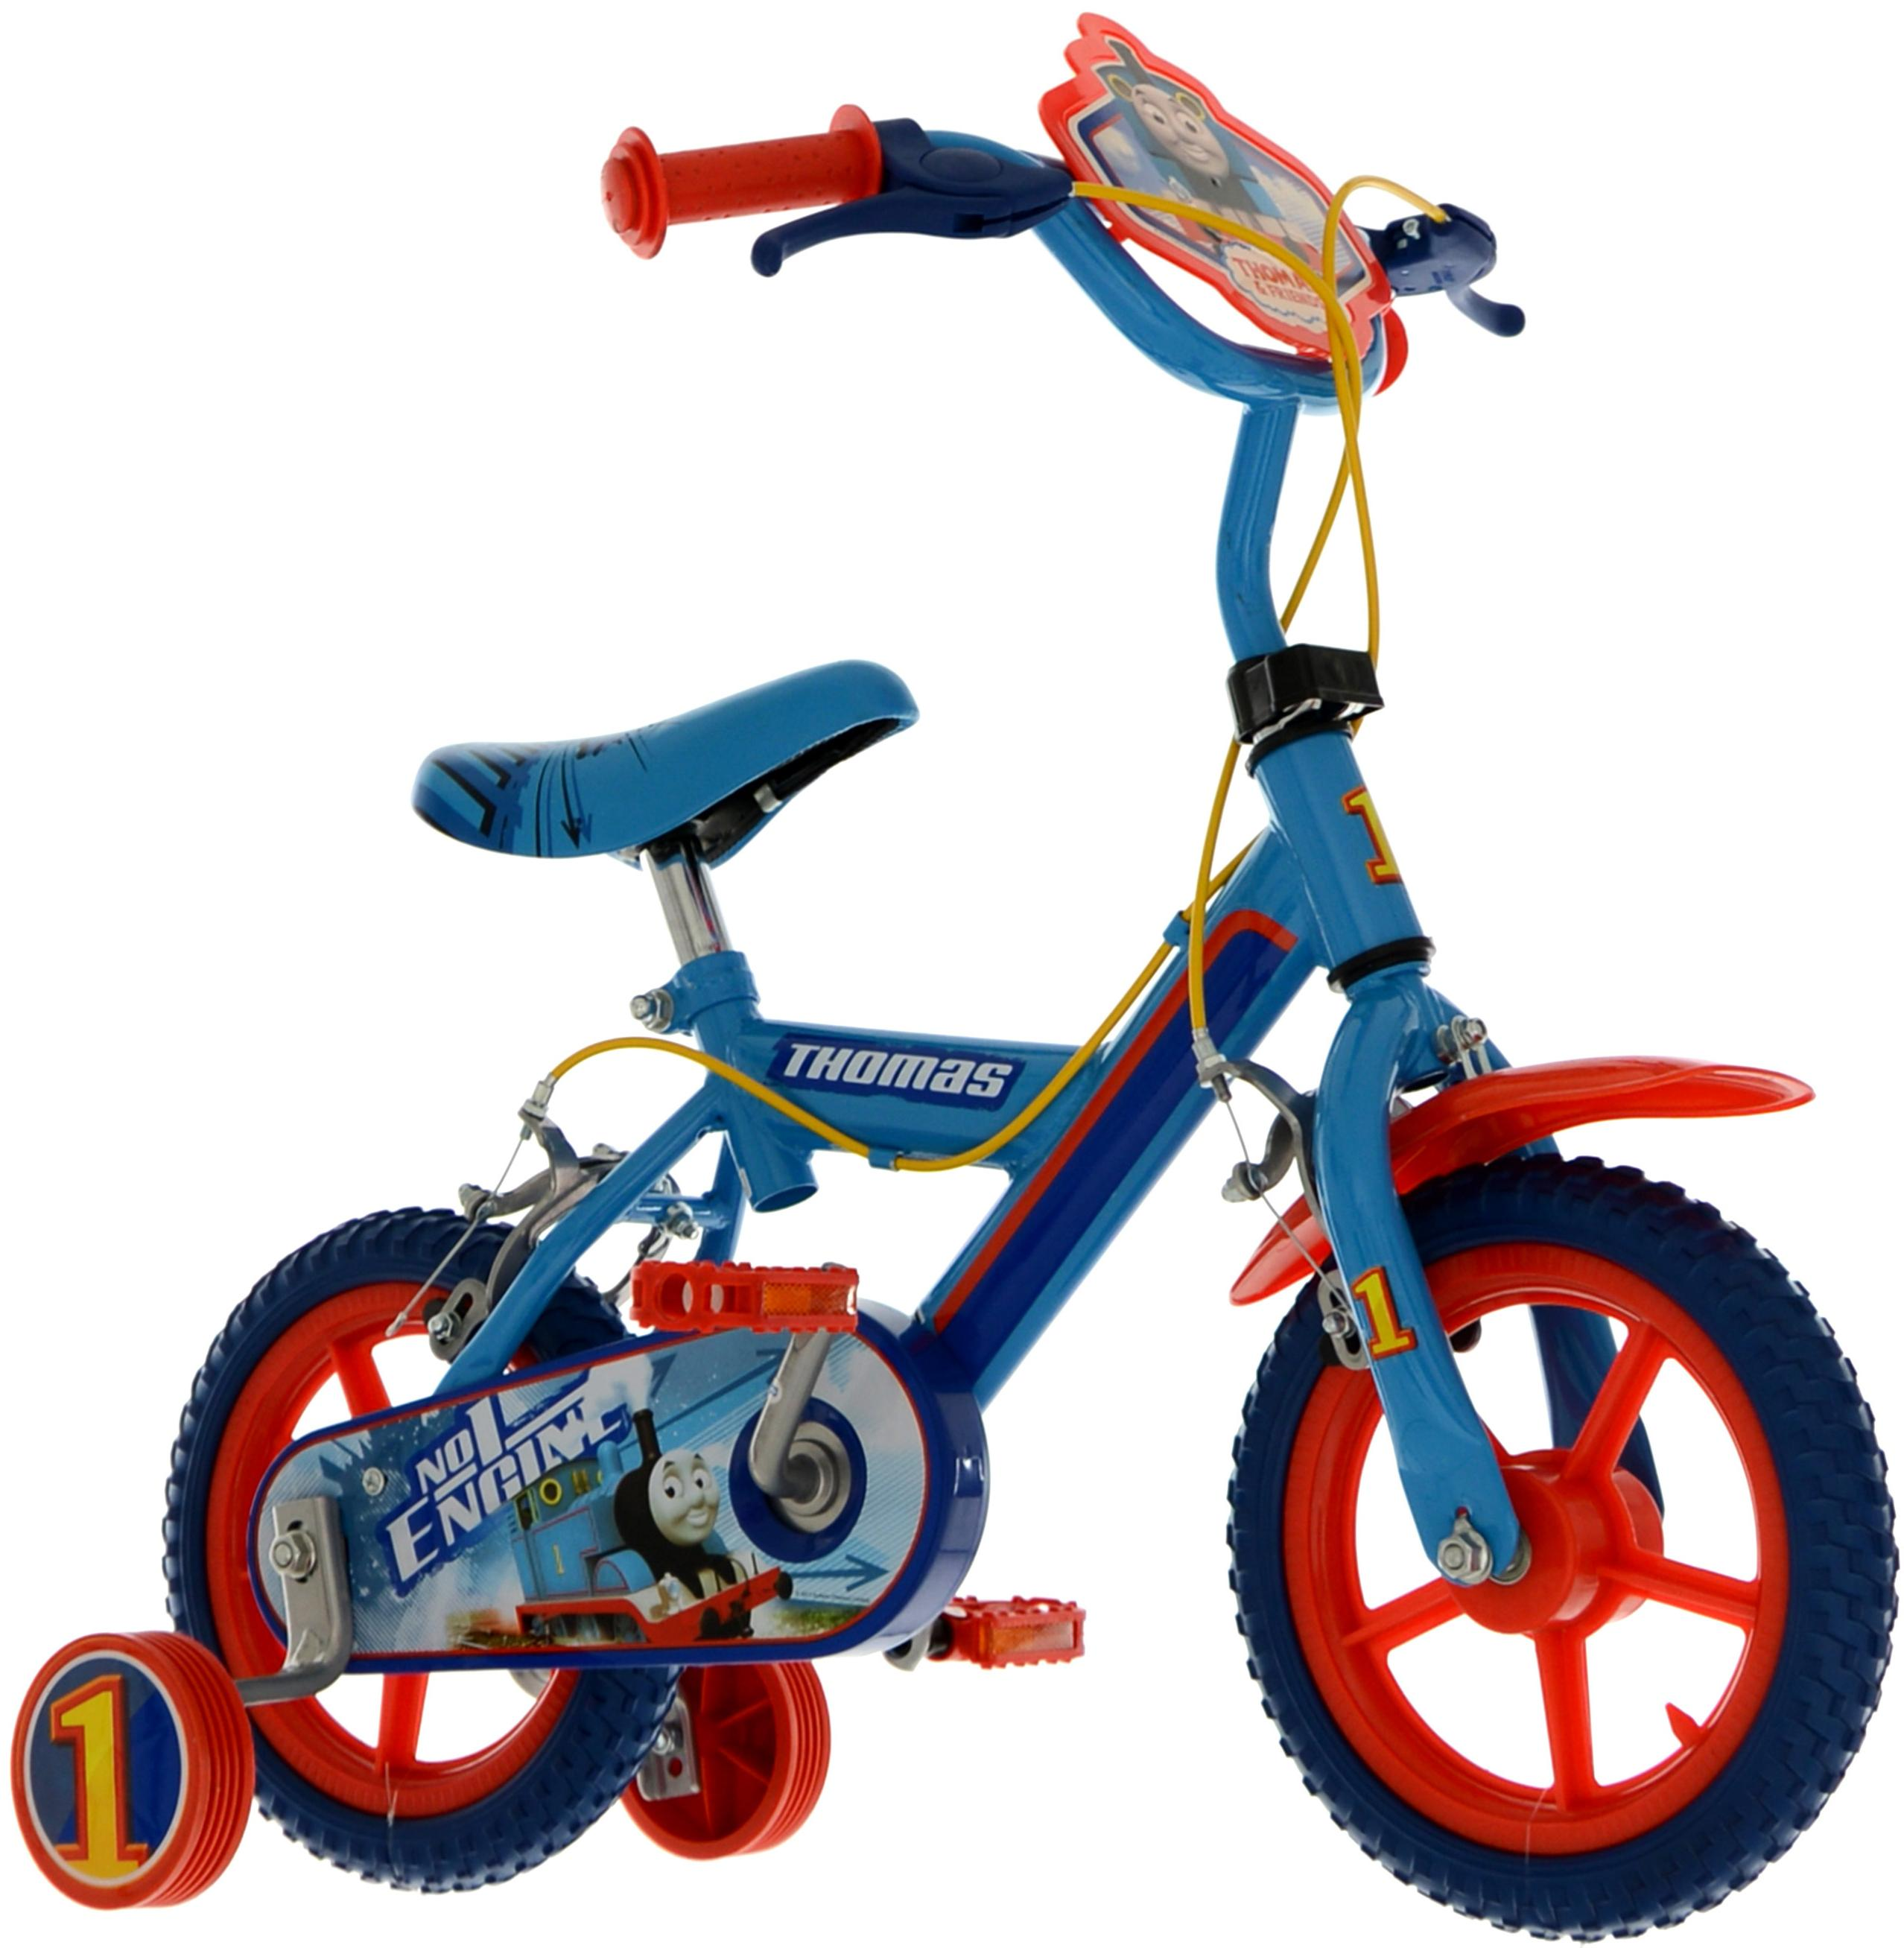 Thomas & Friends Kids Bike - 12 inch Wheel